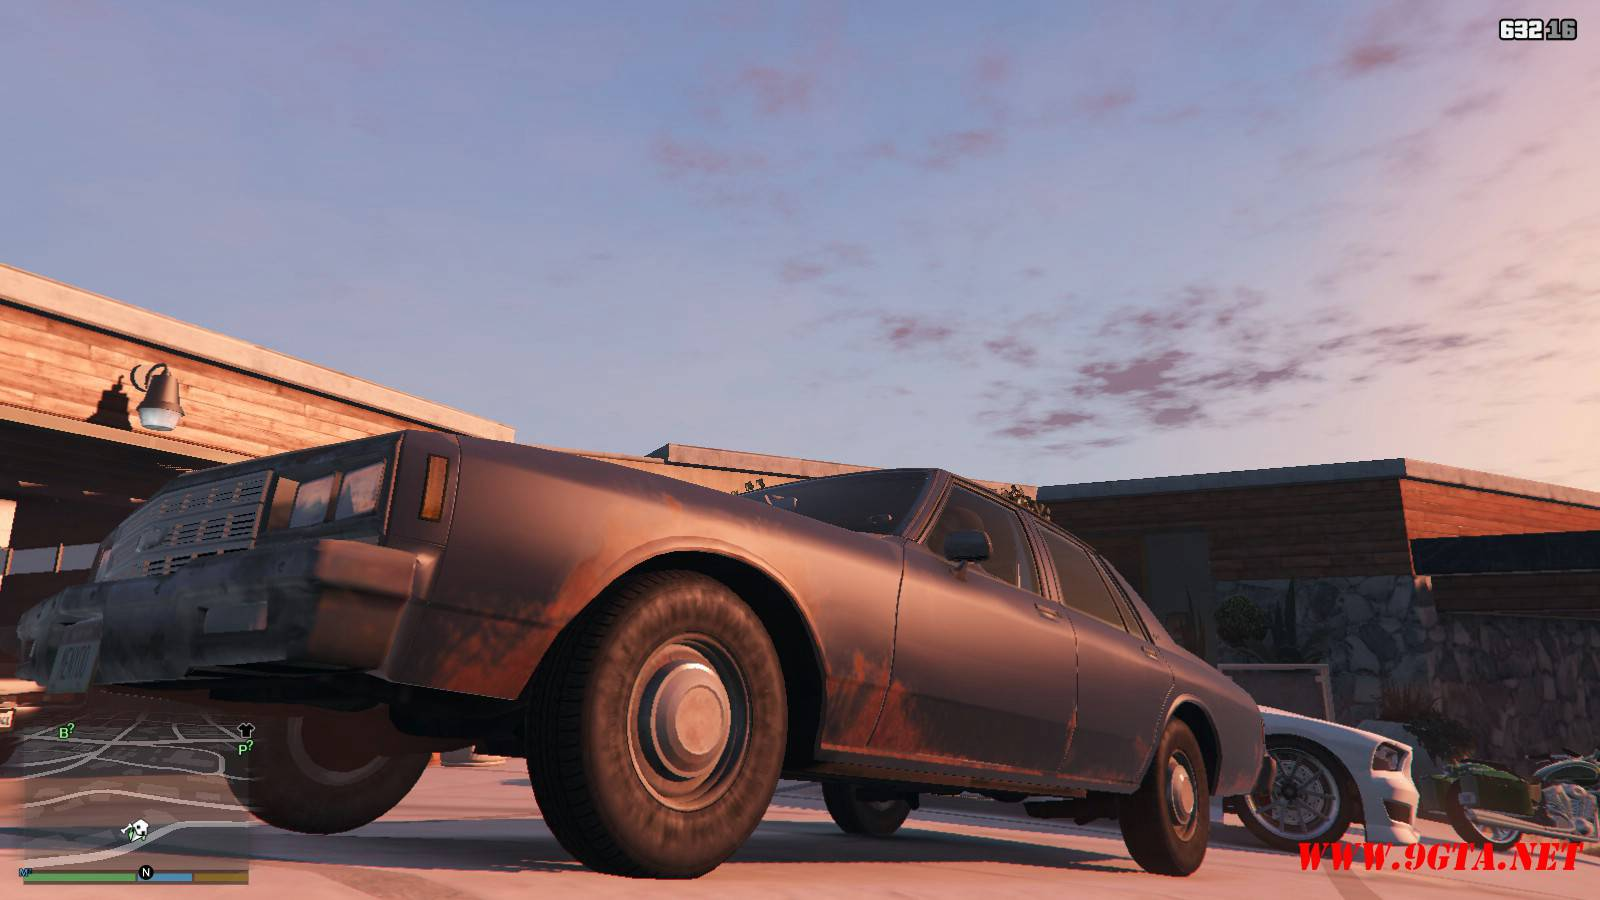 1985 Chevrolet Impala v1.1 Mod For GTA5 (4)